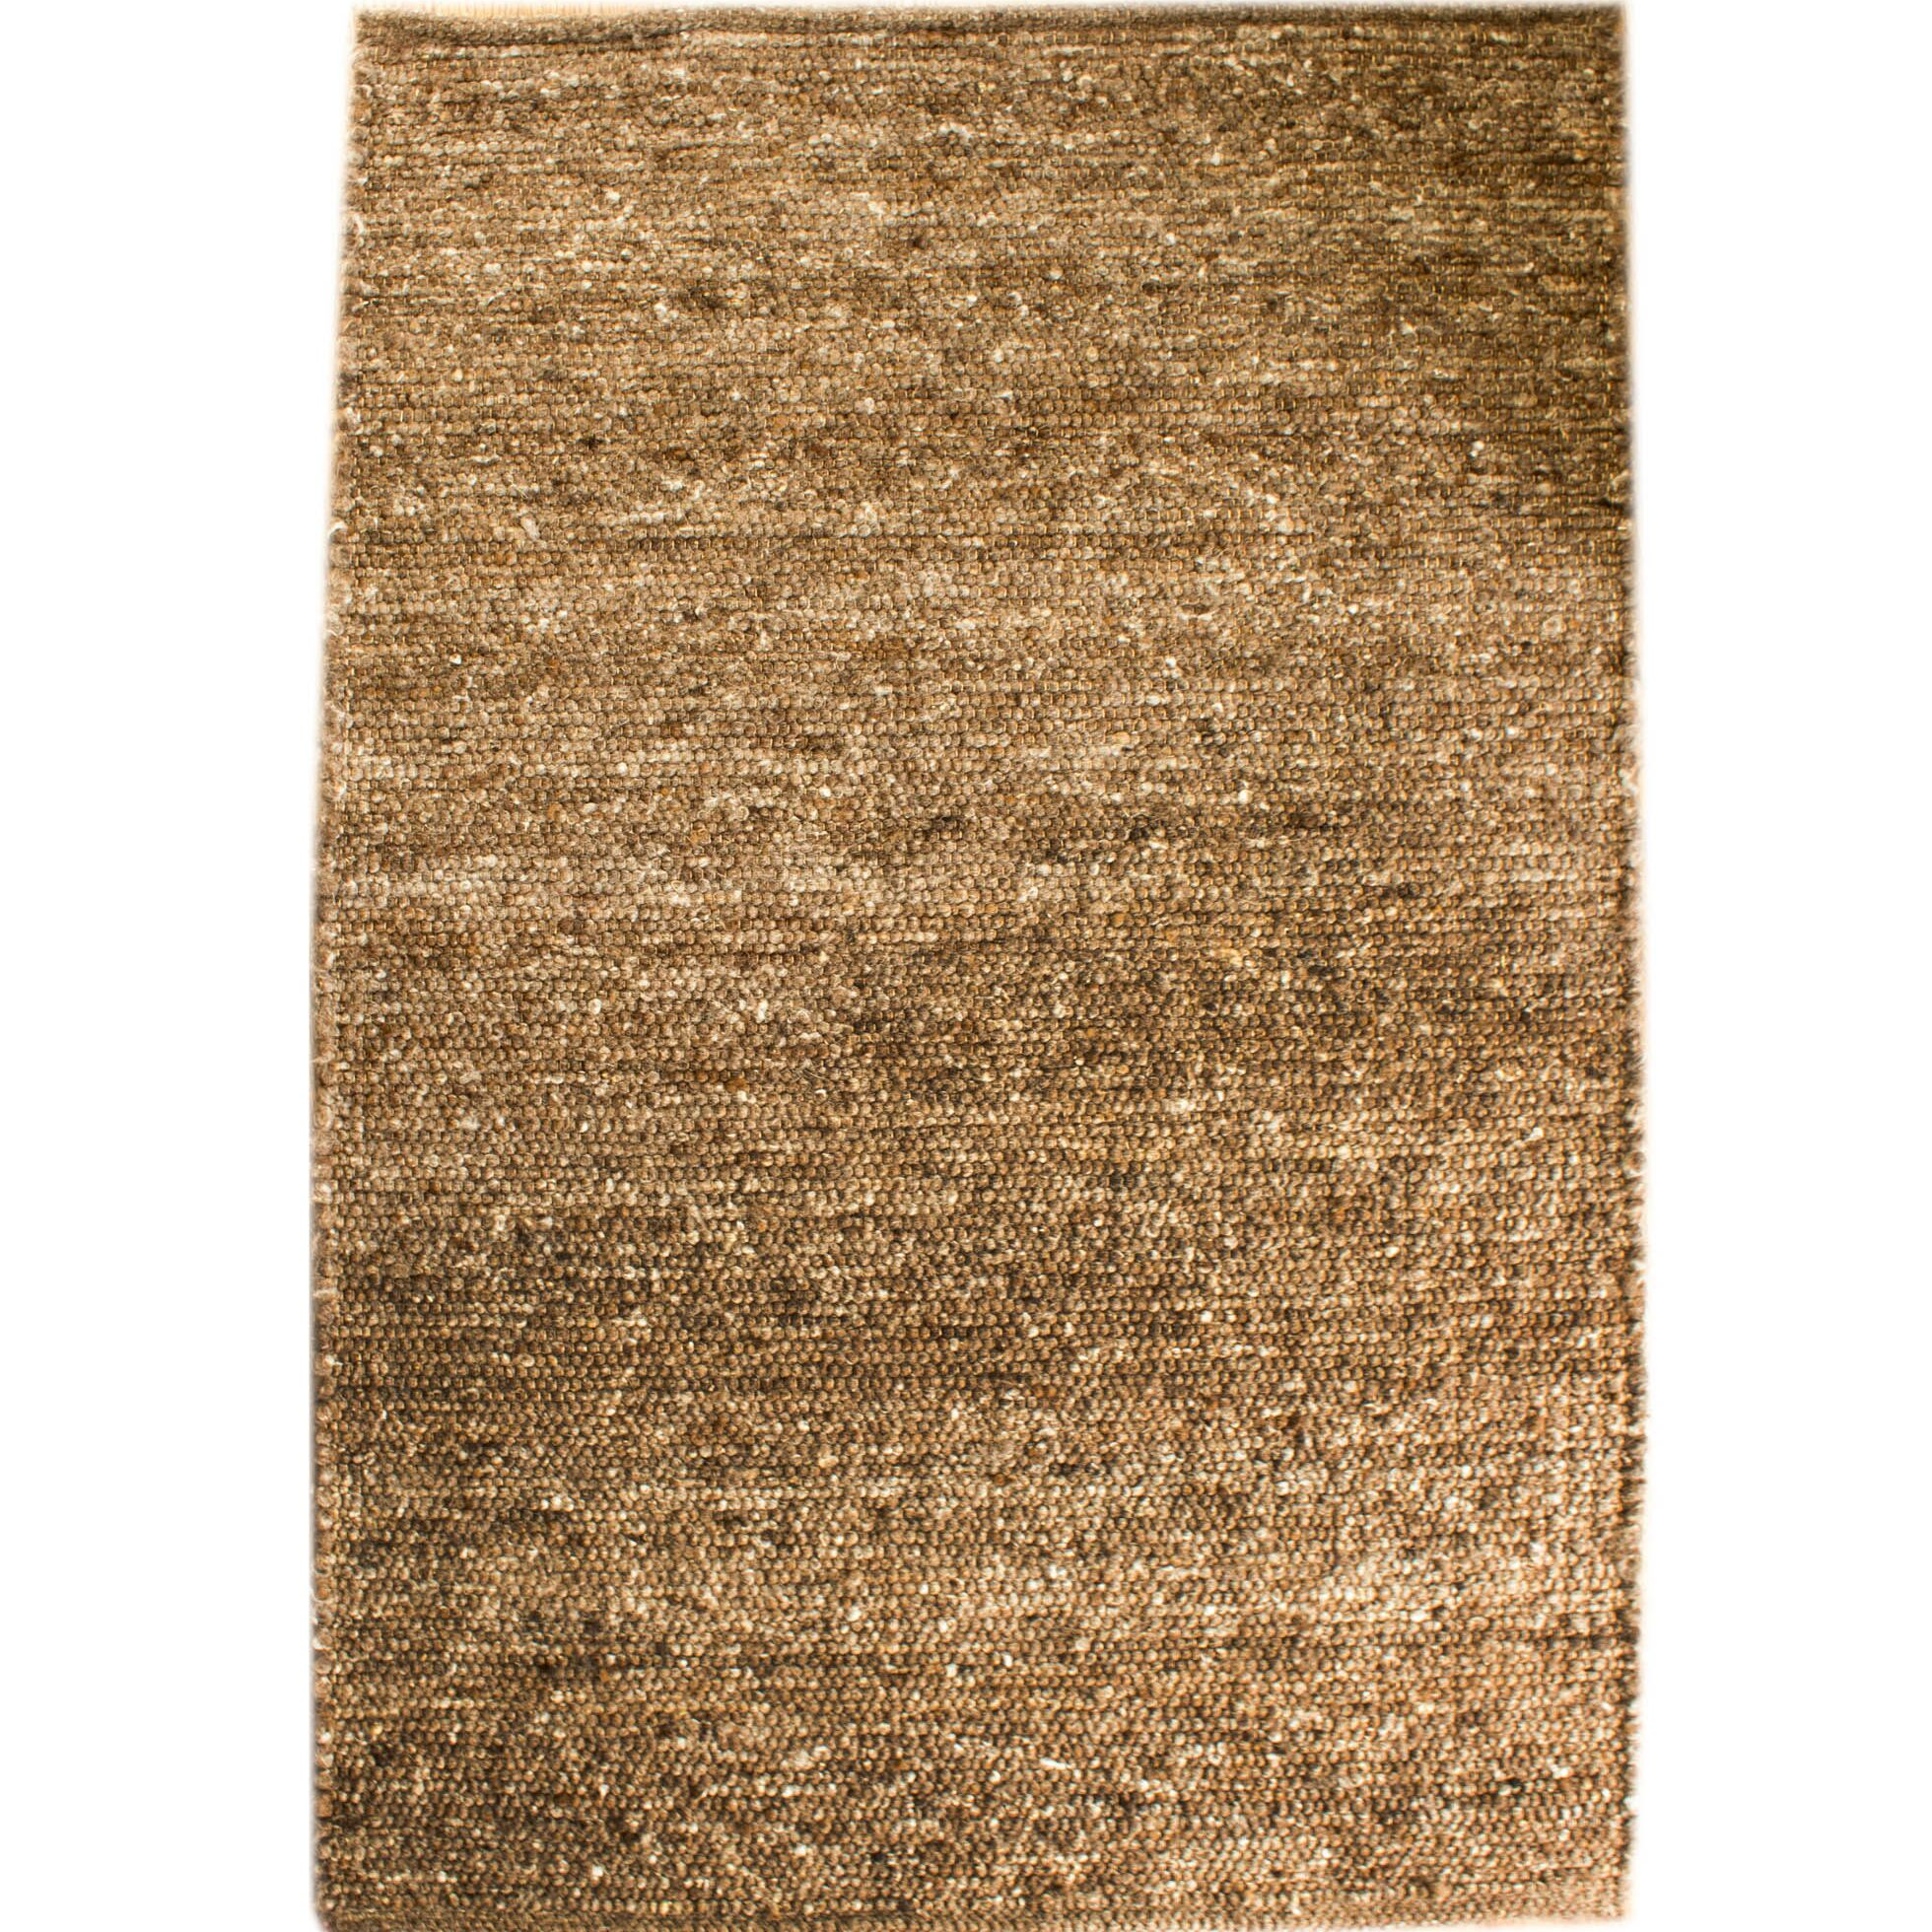 Emrys Berber Hand-Woven Tobacco Brown Area Rug Rug Size: Rectangle 5' x 7'